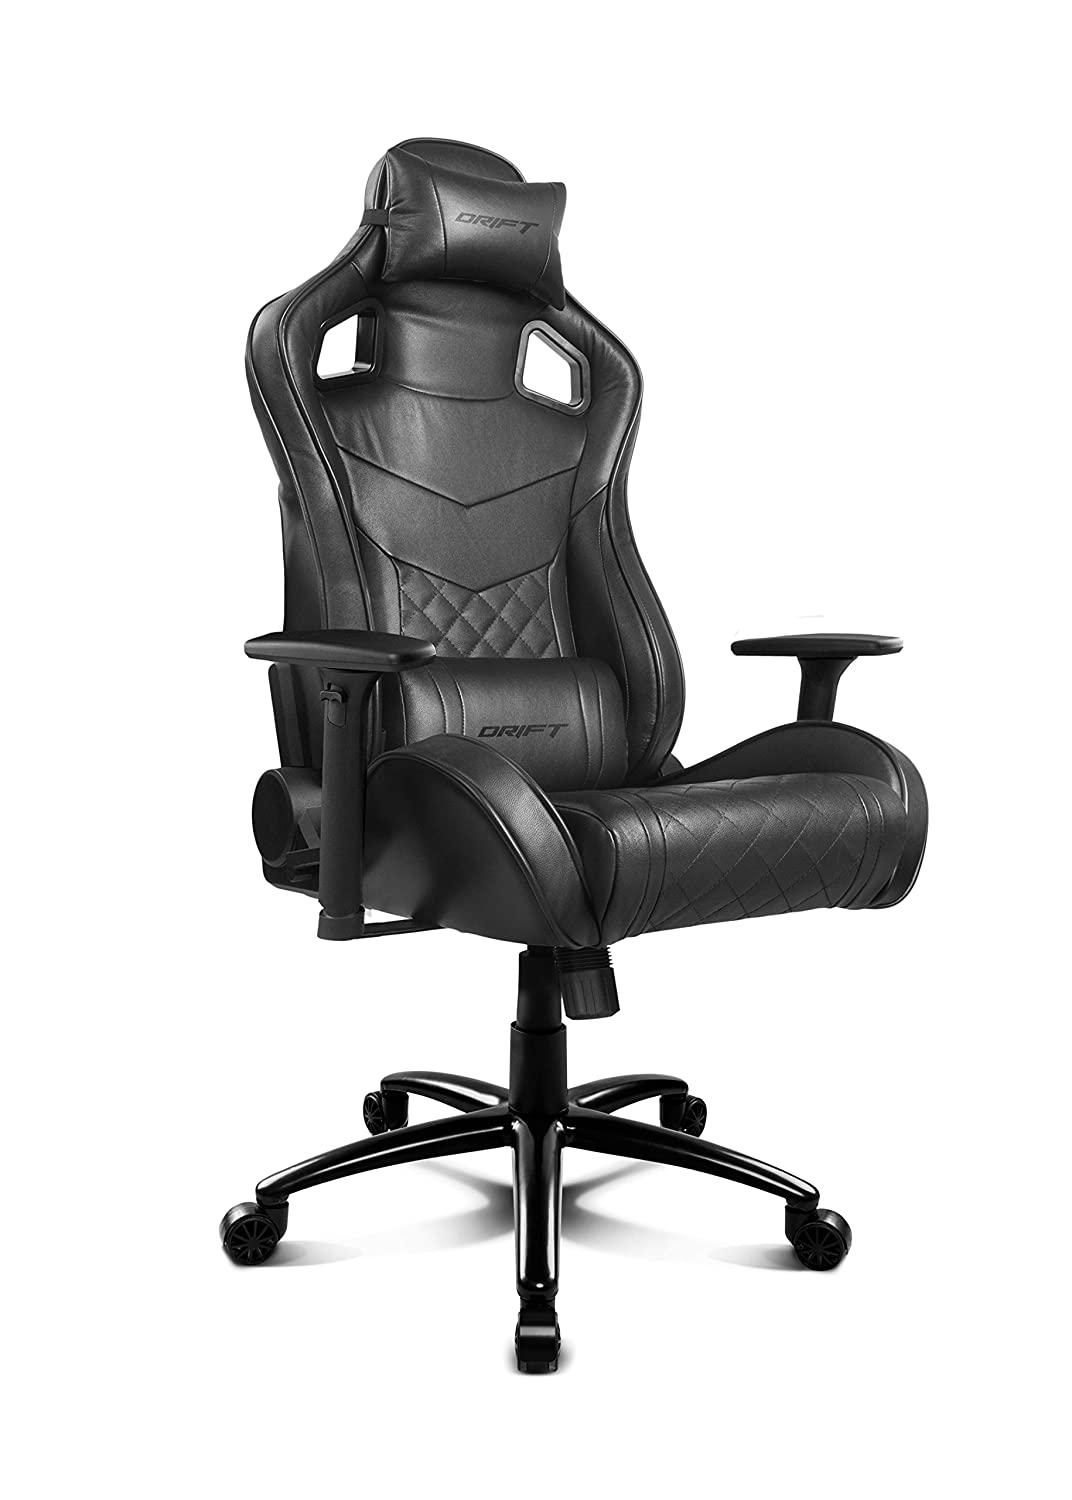 Drift DR450BK - Silla para Juegos, Color Negro: Drift: Amazon.es: Informática